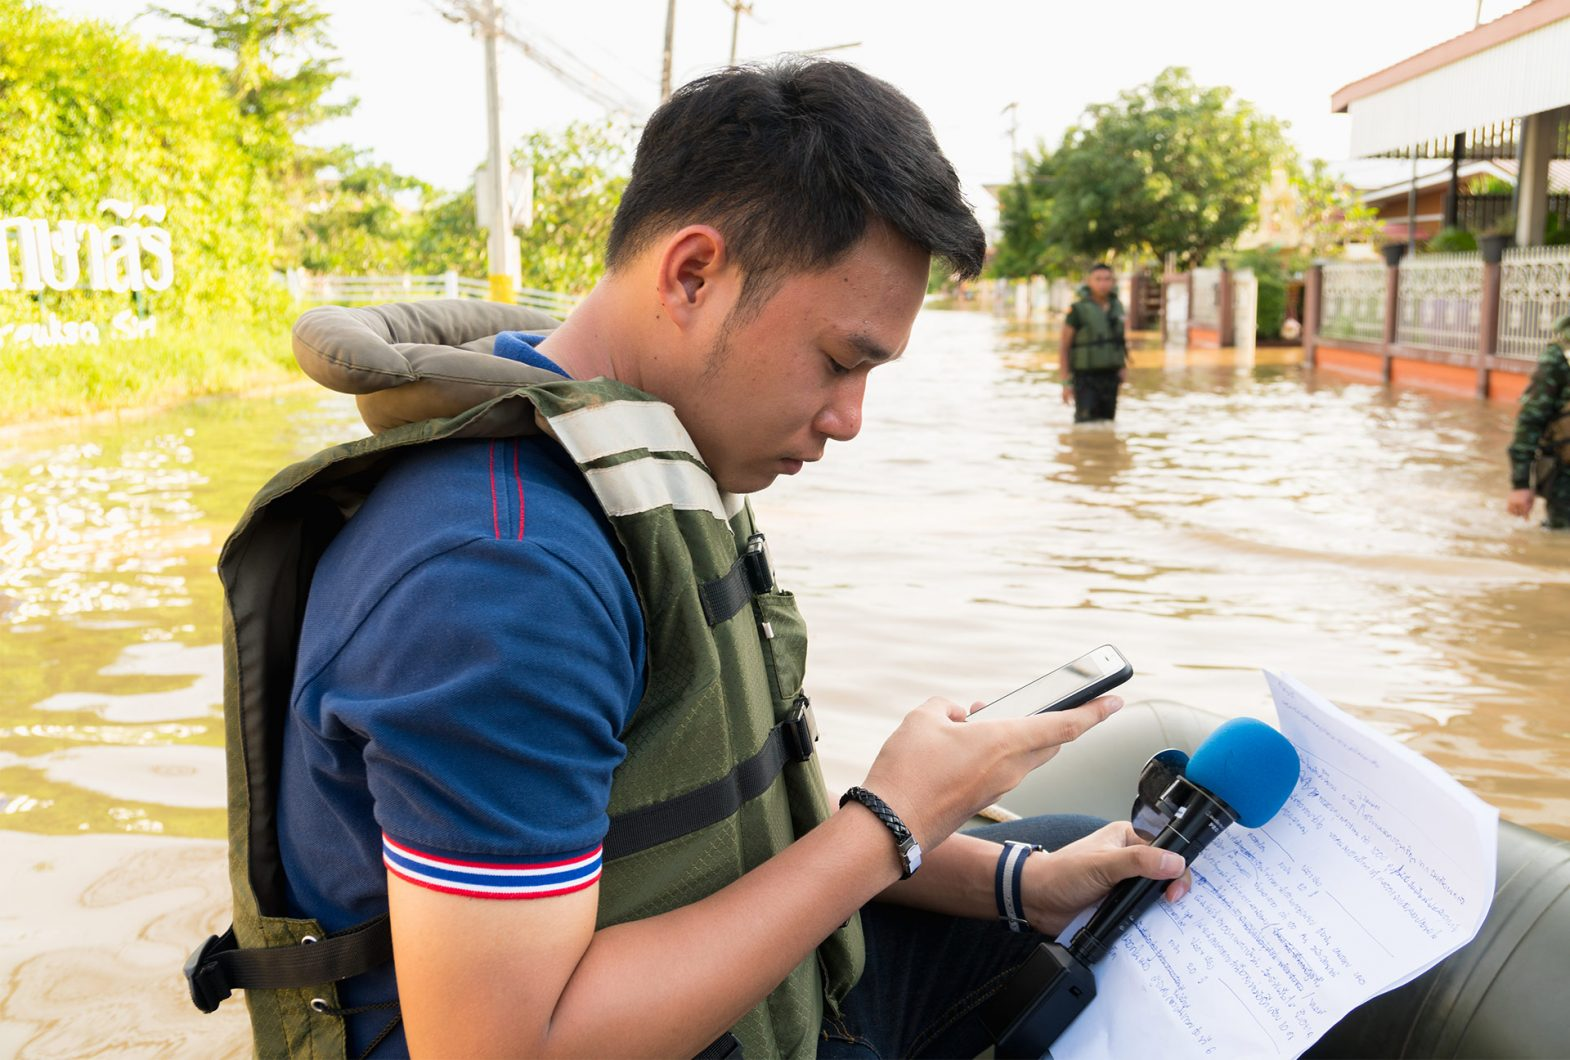 Person looking at phone while wading in a flood.